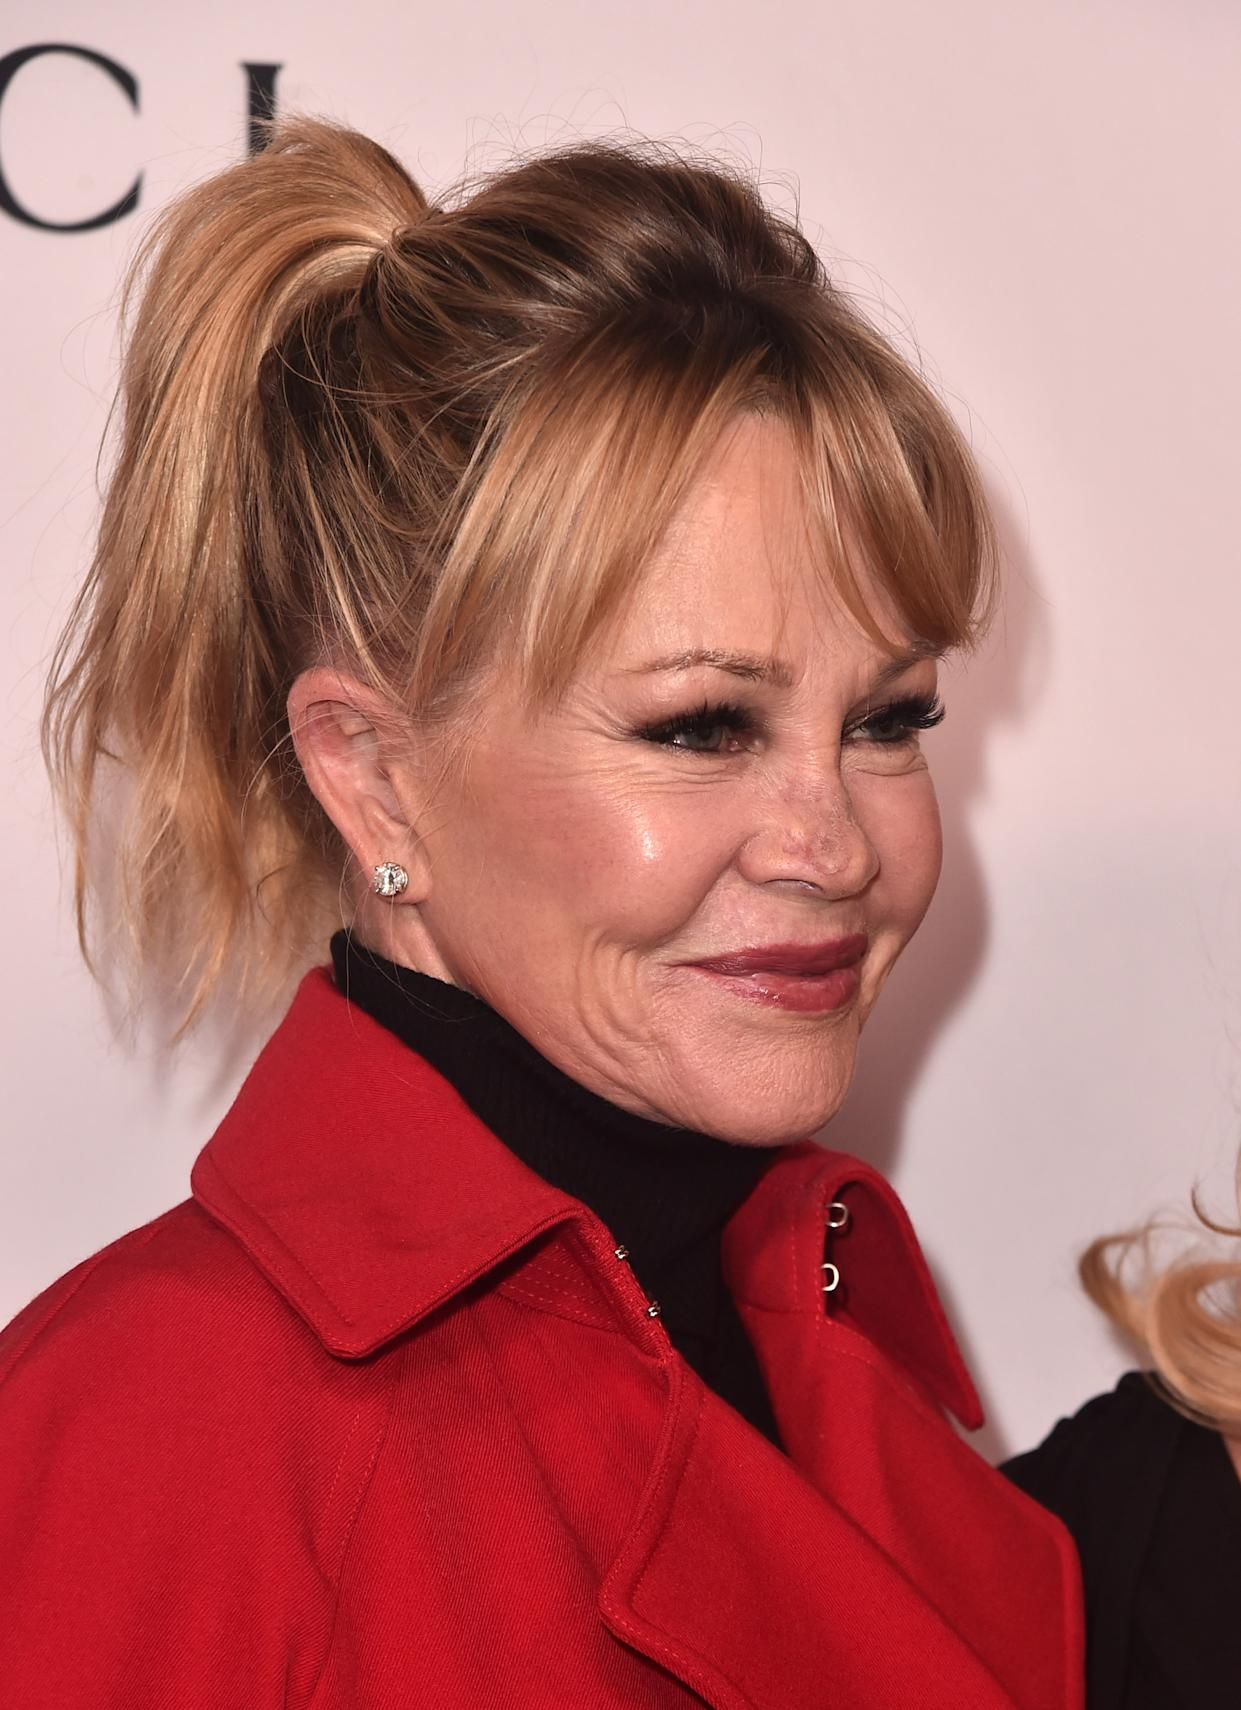 BEVERLY HILLS, CALIFORNIA - DECEMBER 03: Melanie Griffith attends Equality Now's Annual Make Equality Reality Gala at The Beverly Hilton Hotel on December 03, 2018 in Beverly Hills, California. (Photo by Alberto E. Rodriguez/Getty Images)